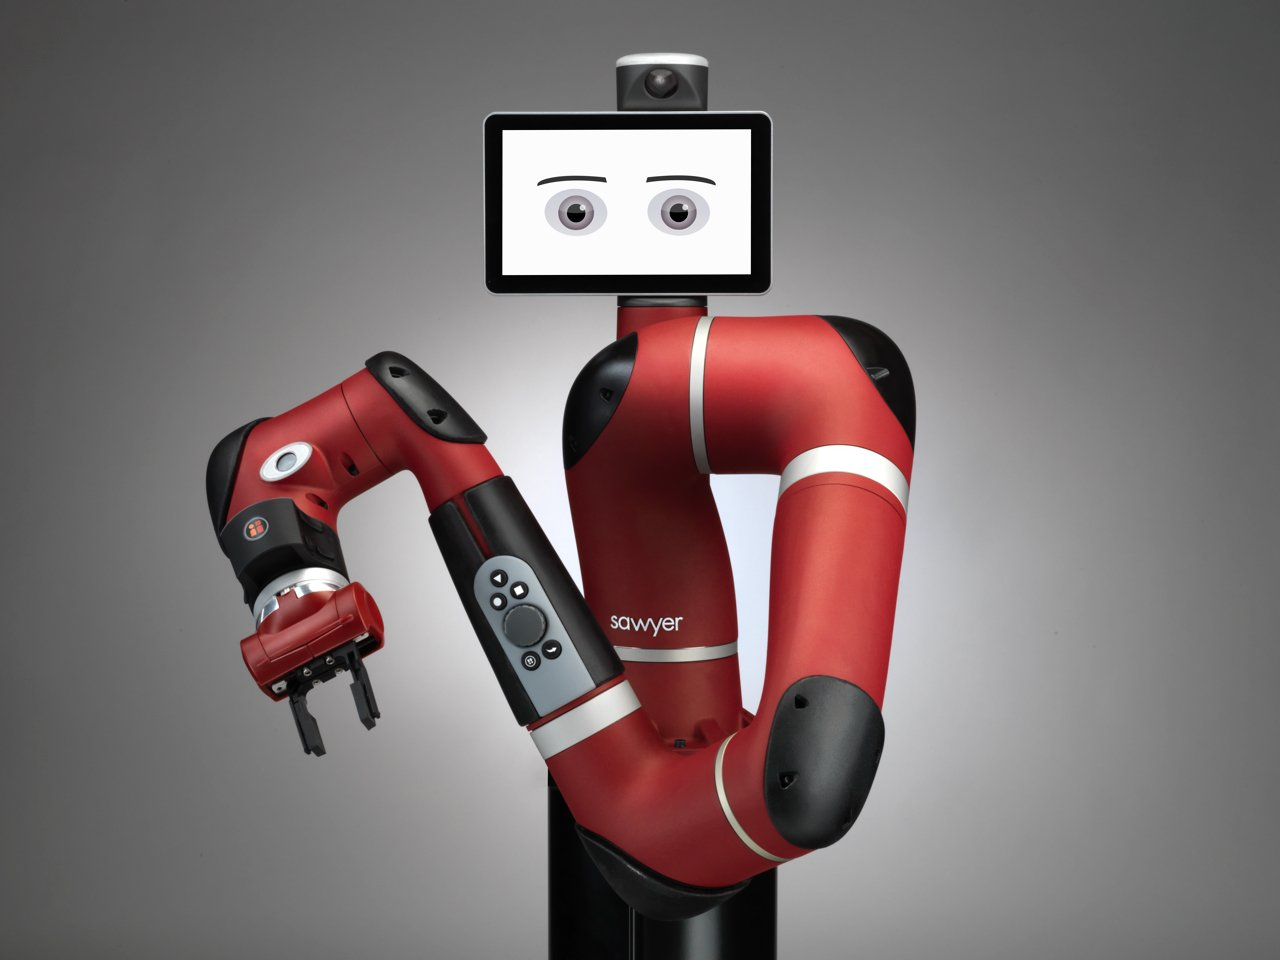 Hahn Group acquires Sawyer IP from defunct Rethink Robotics